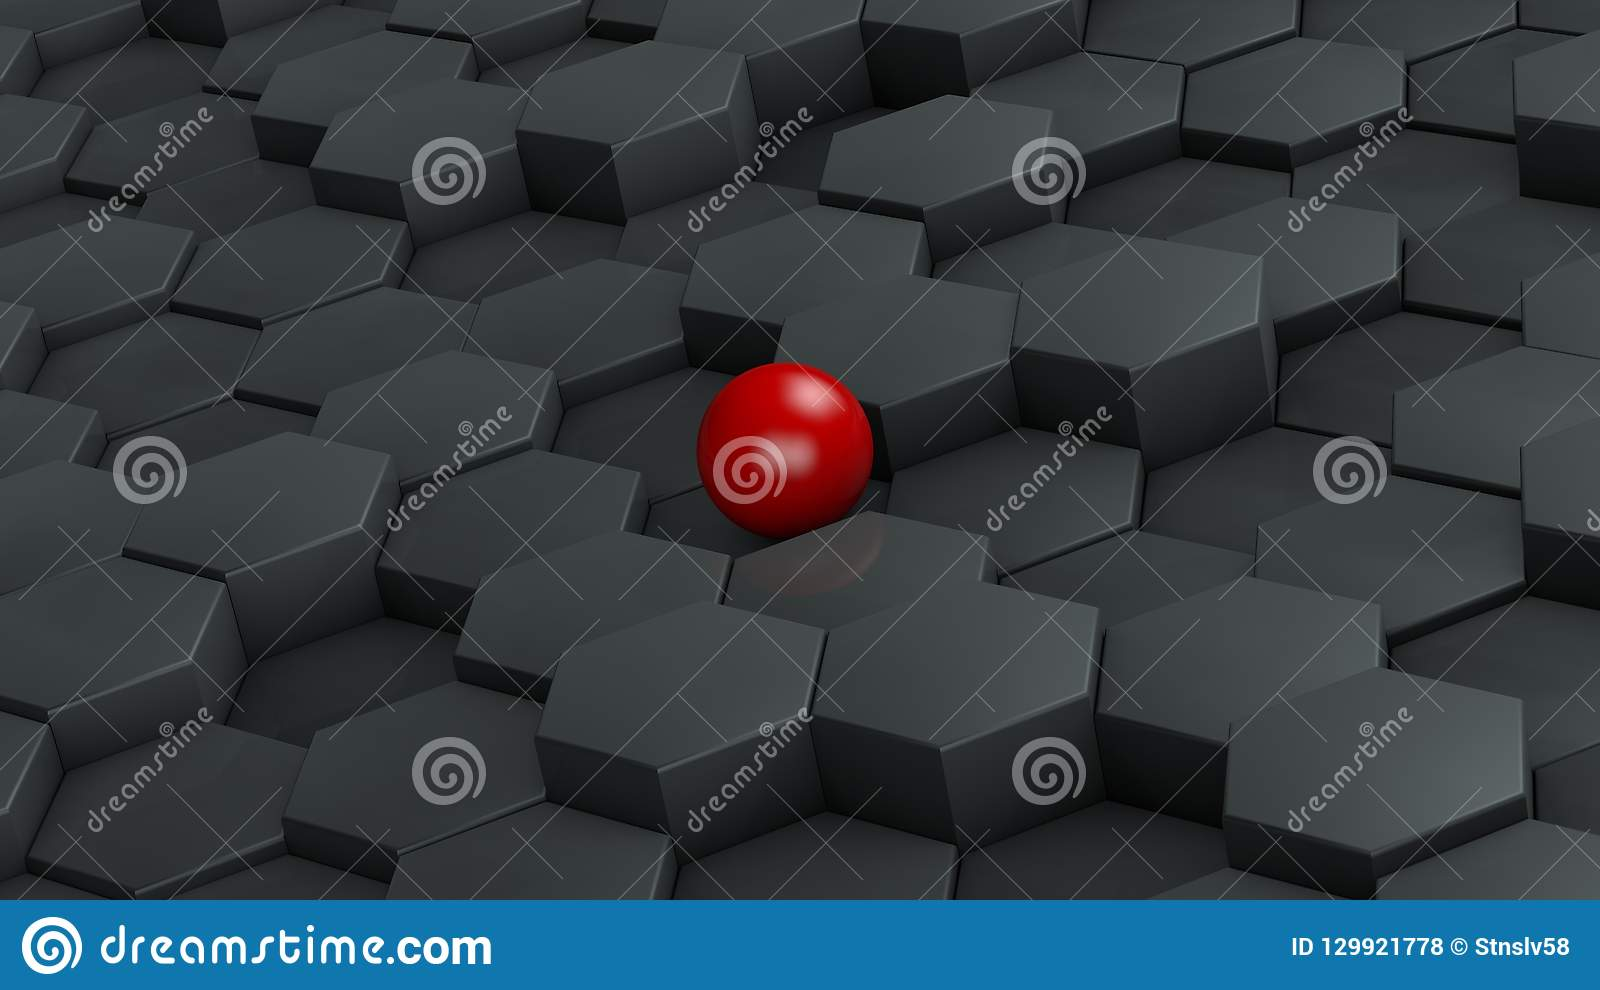 Abstract illustration of black hexagons of different size and red ball lying in the center. The idea of uniqueness. 3D rendering.